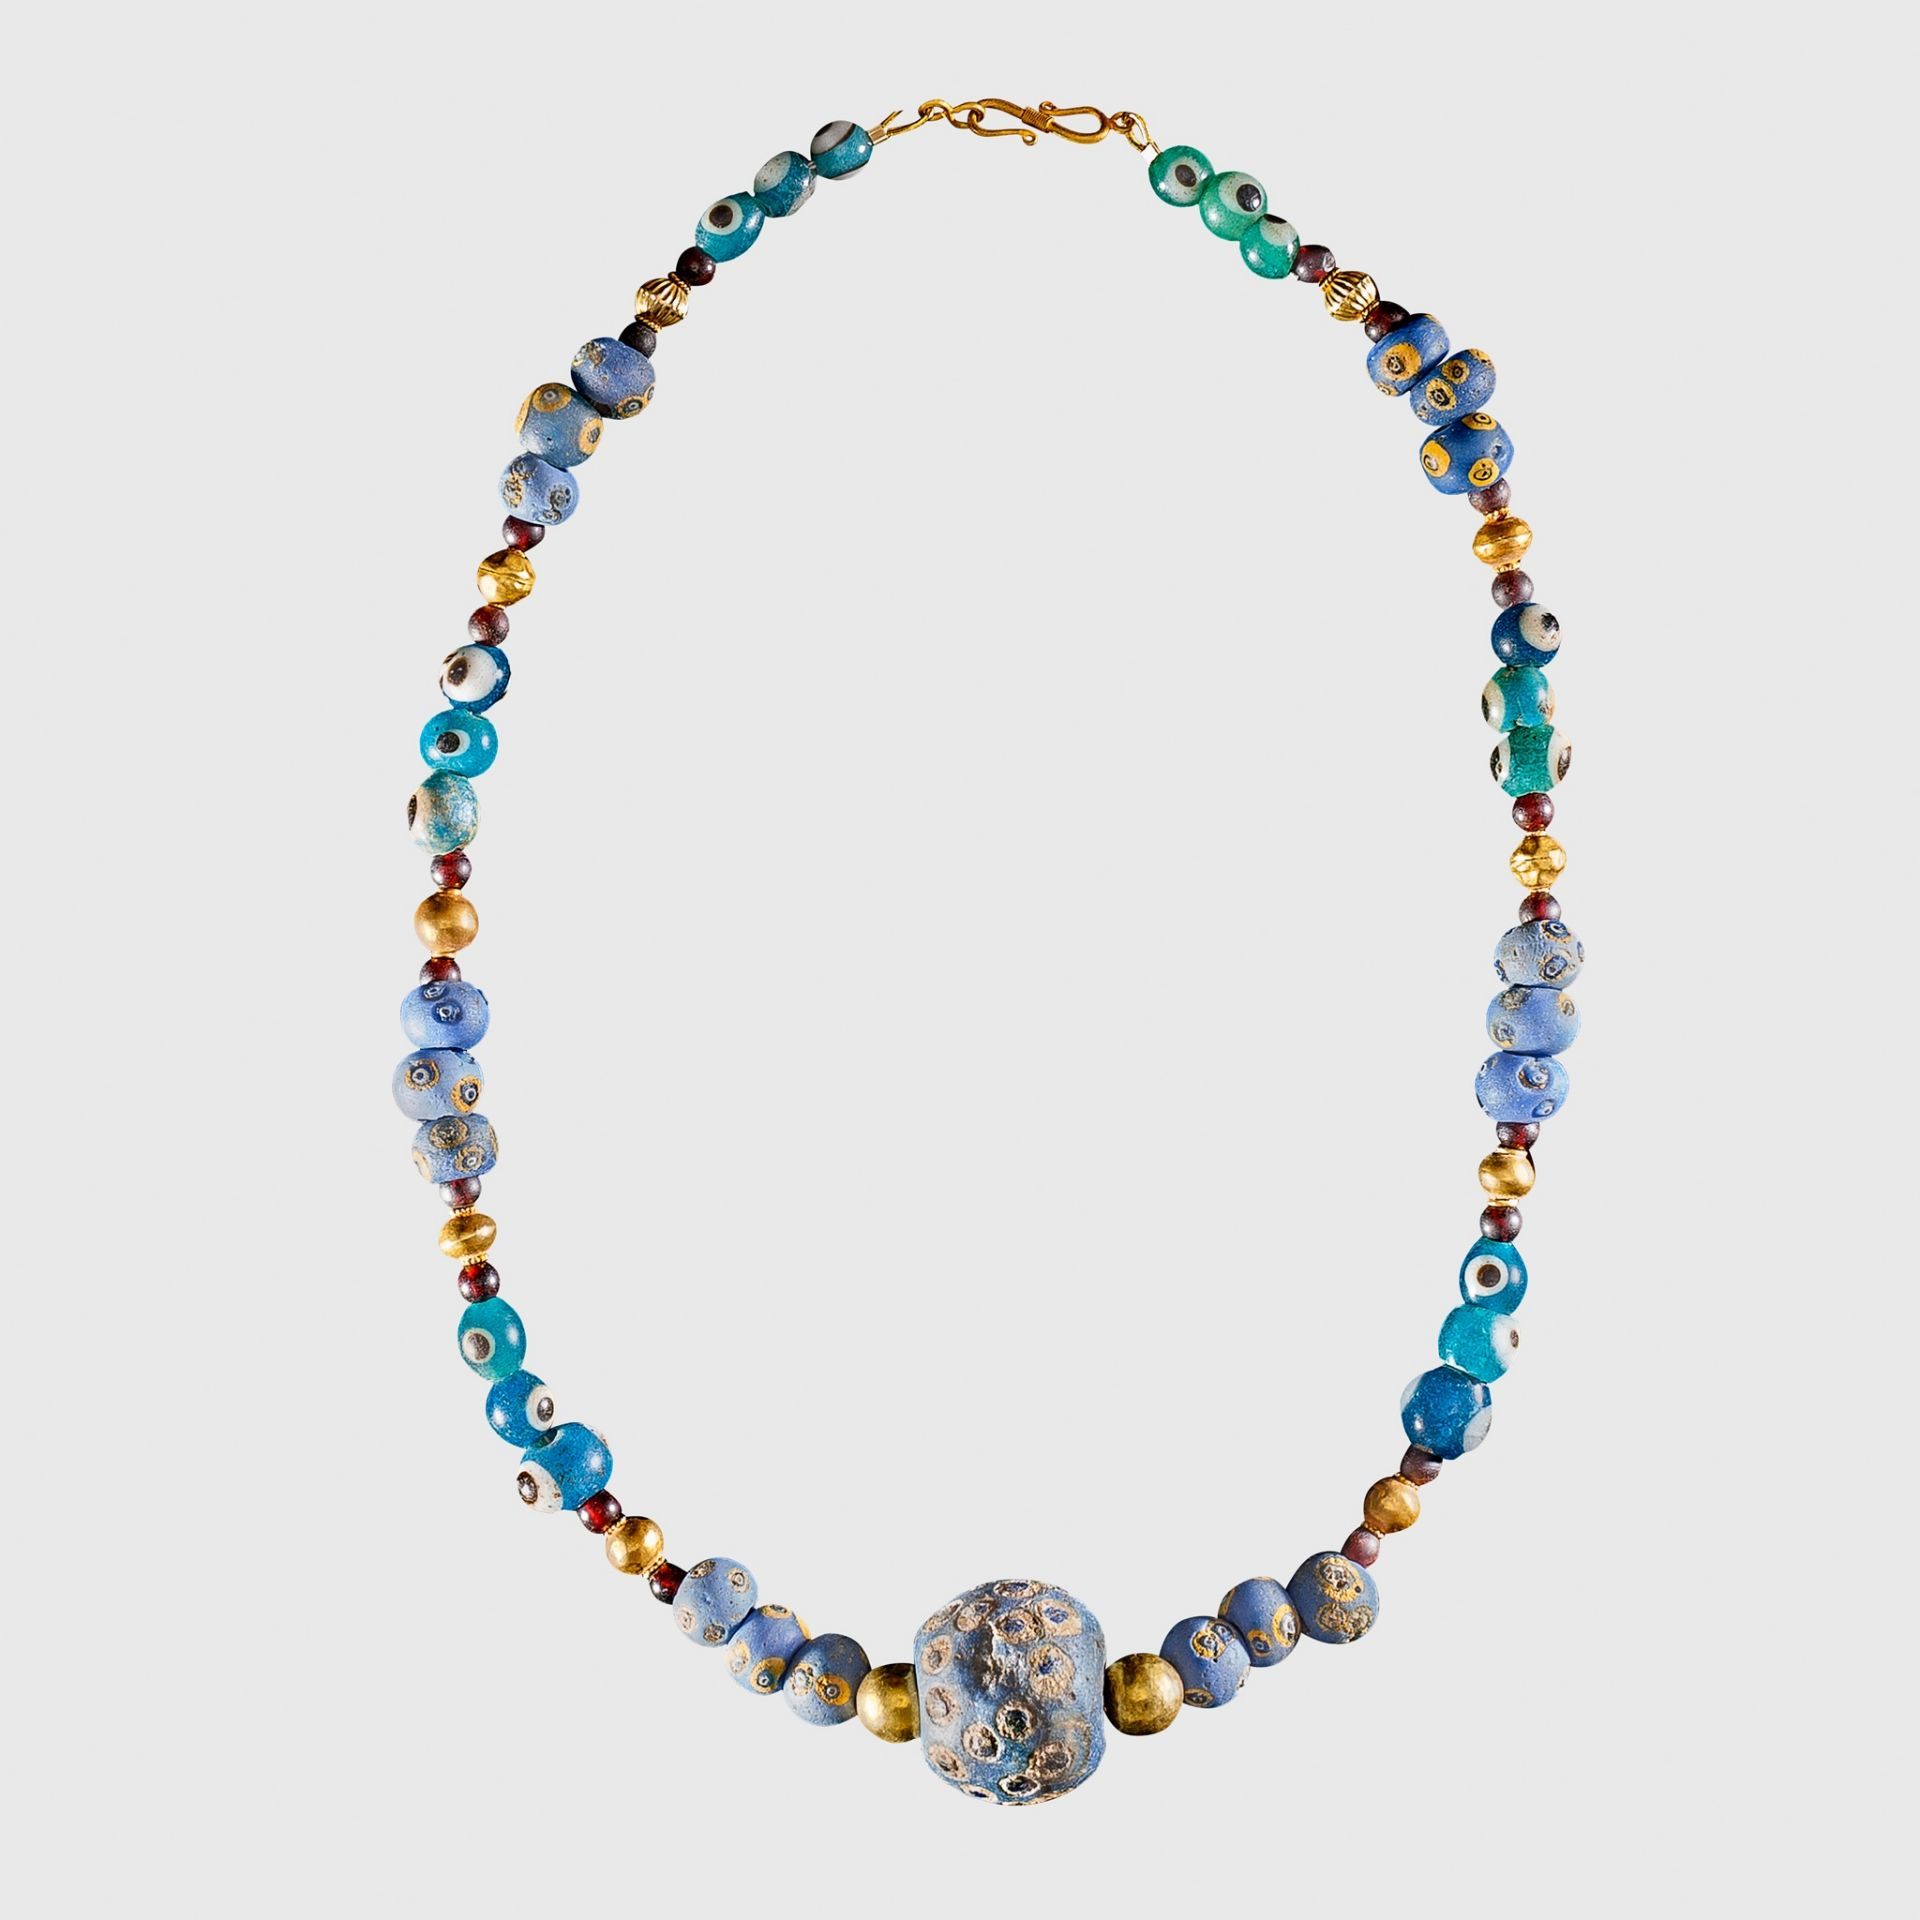 PHOENICIAN EYE GLASS AND GOLD BEAD NECKLACE NEAR EAST, C. 7TH CENTURY B.C.